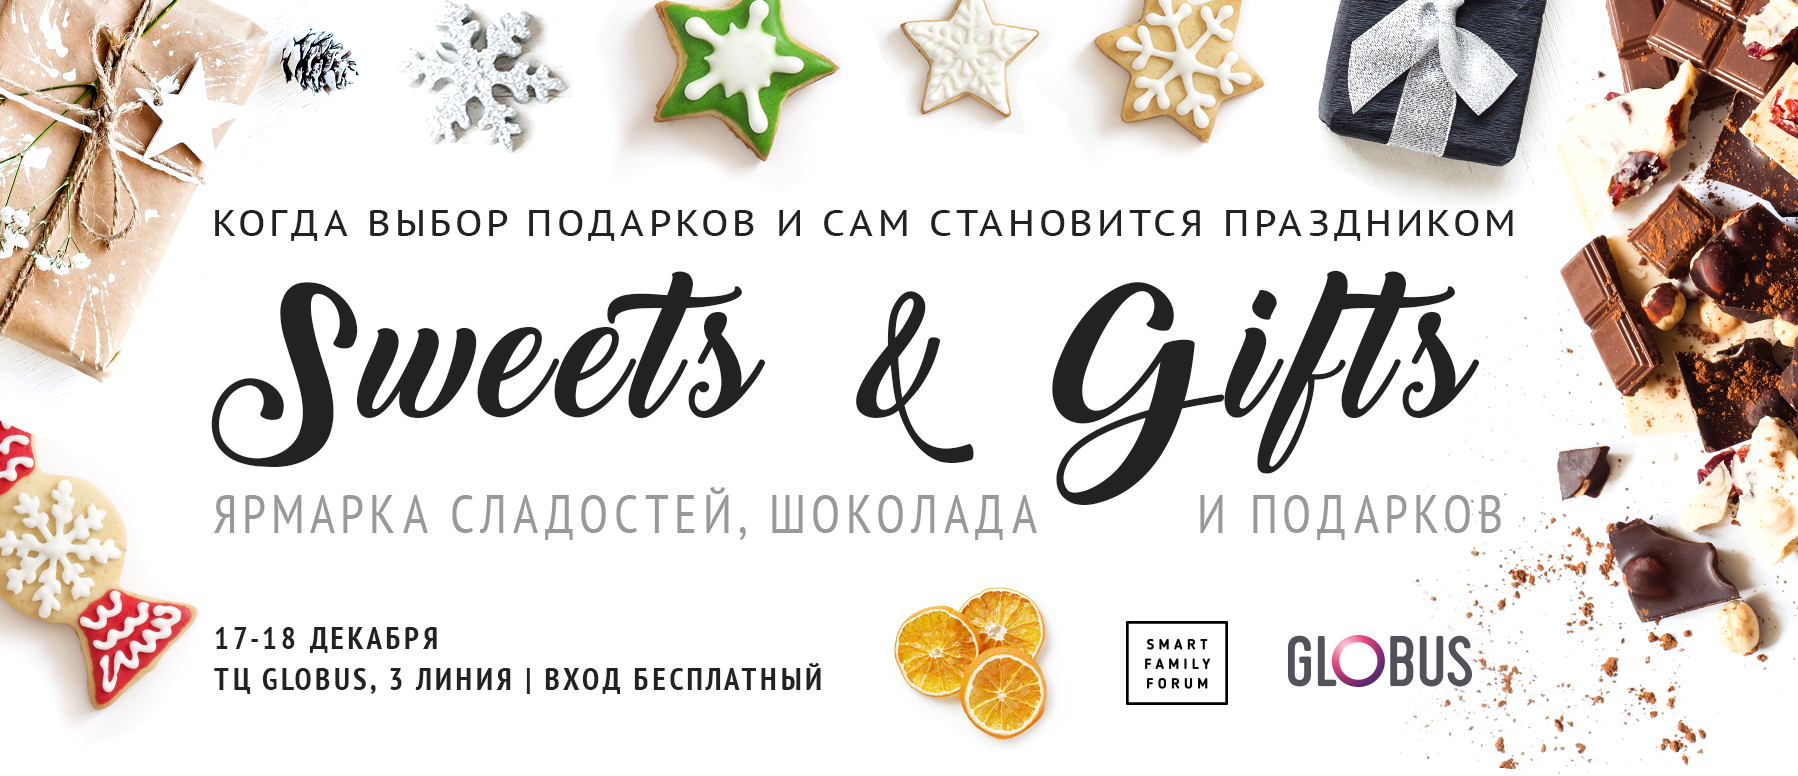 Sweets-Gifts_cover_sait